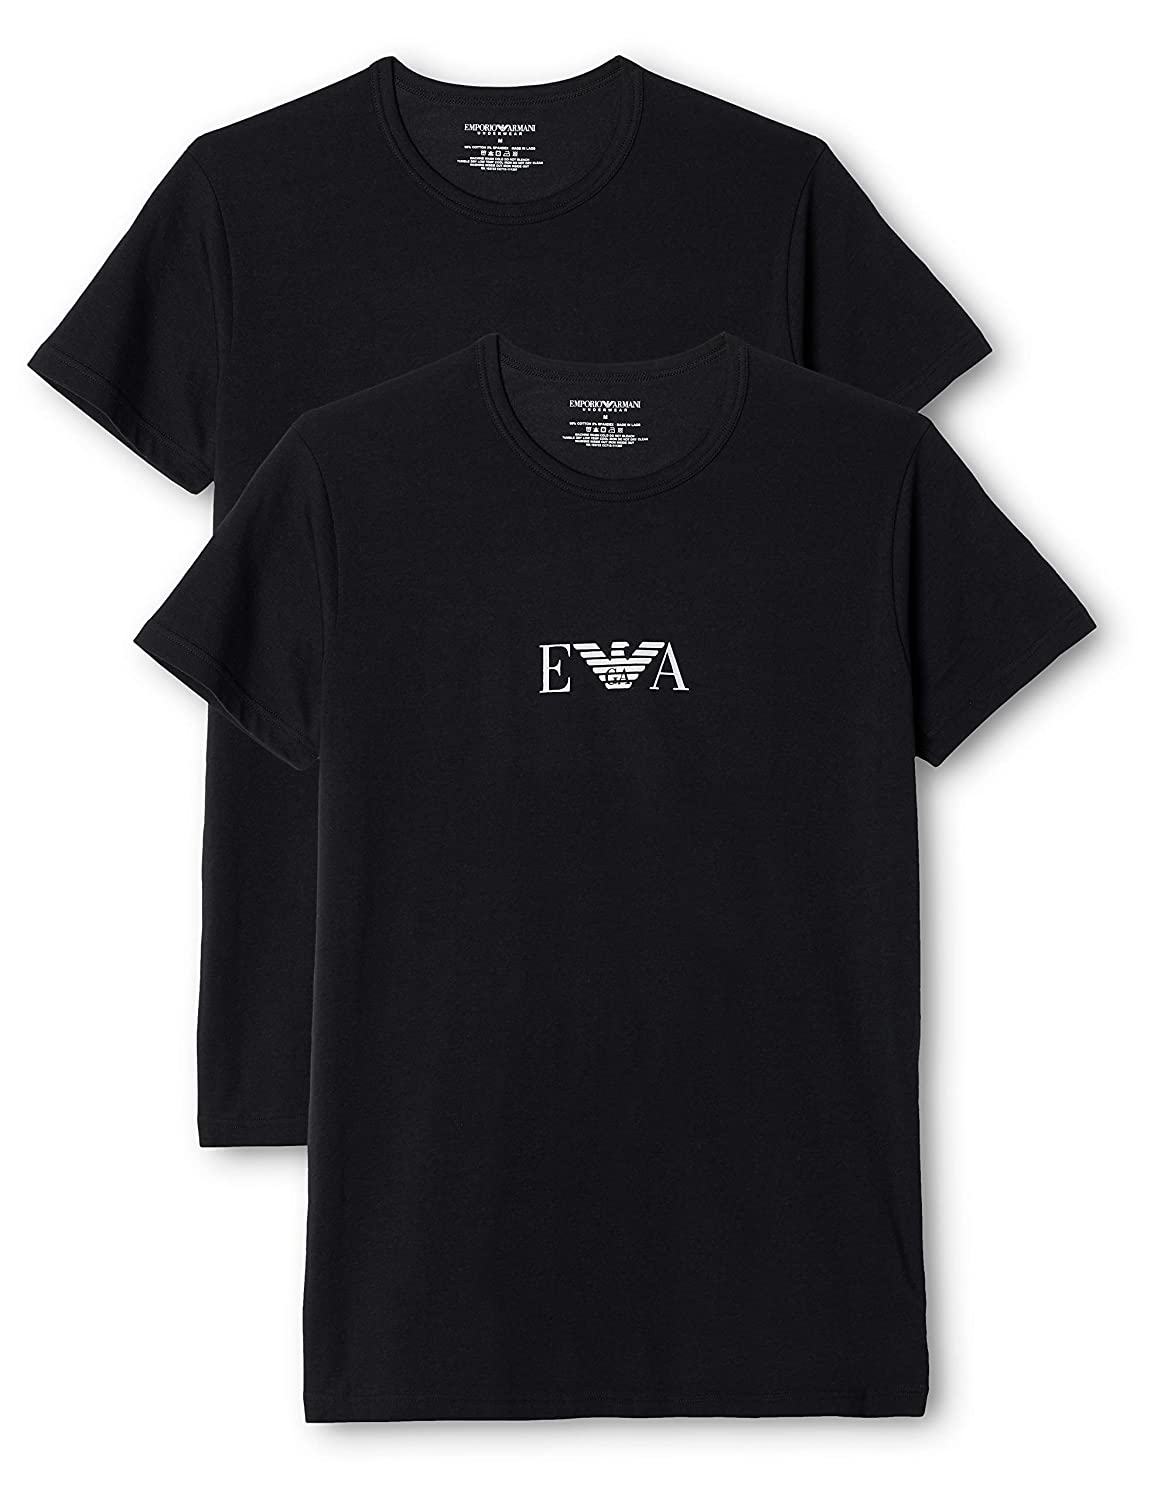 024ffa1a6a Emporio Armani Stretch BI-Pack Crew Neck T-shirt, Black/White